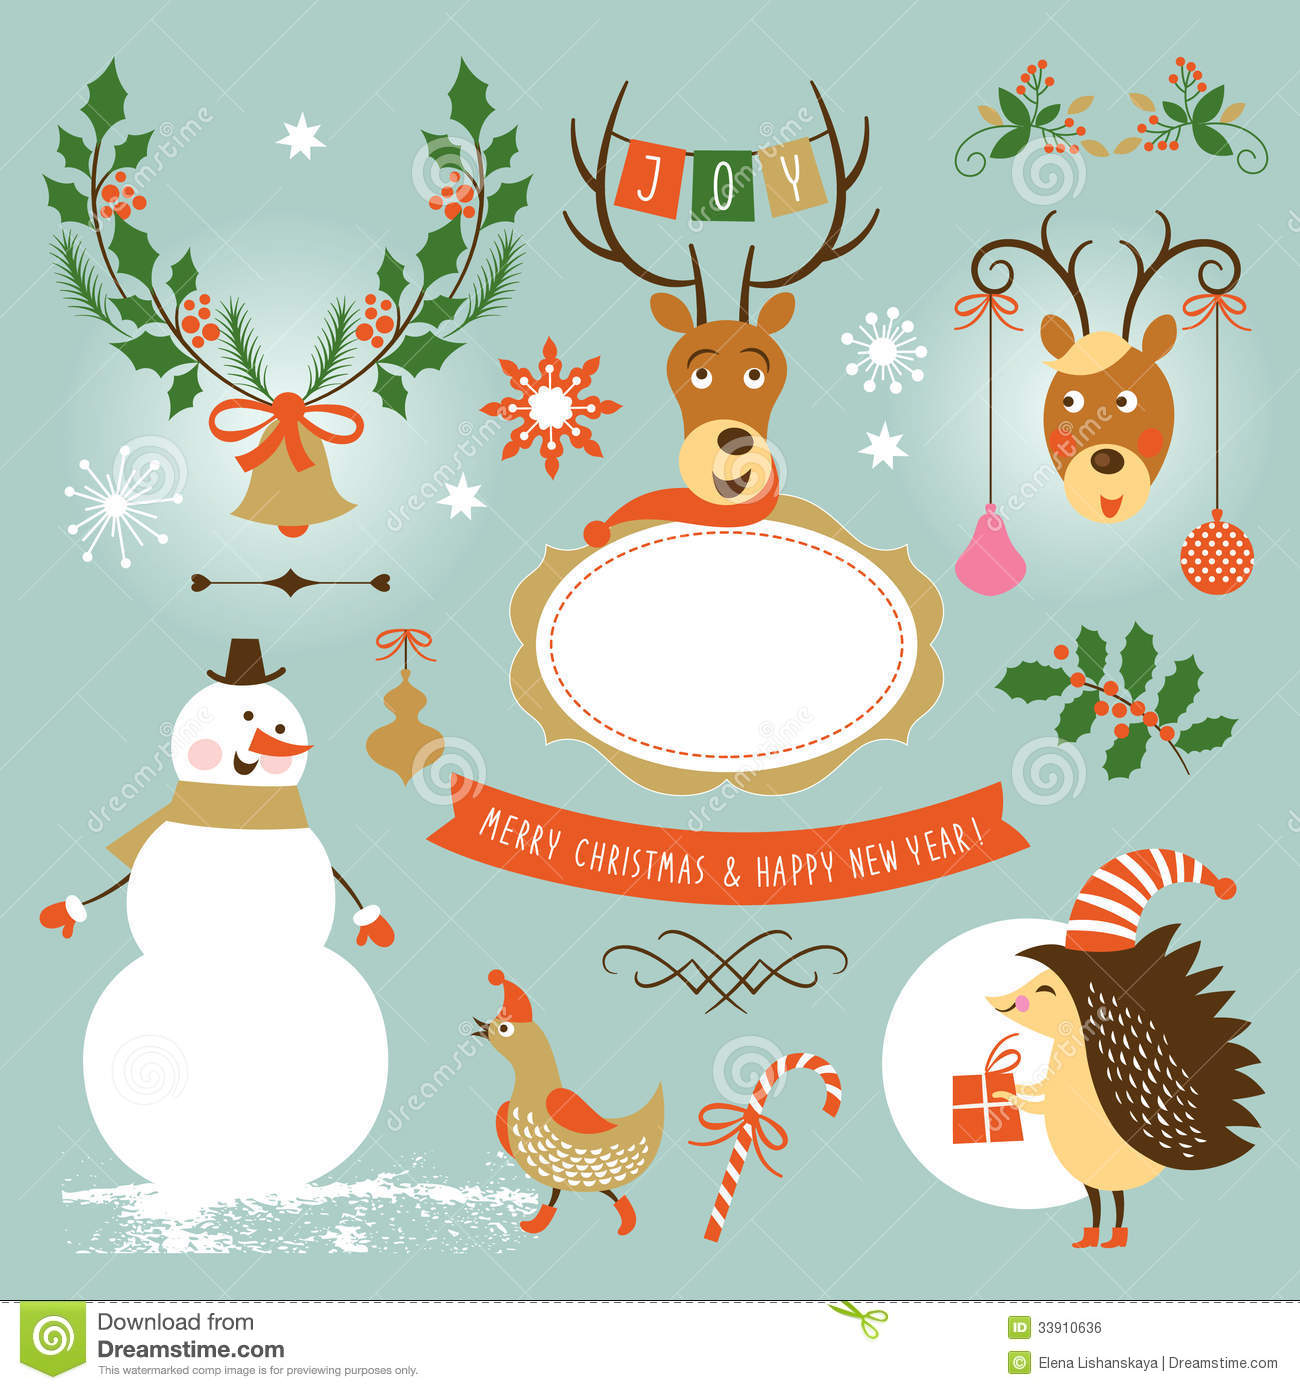 All graphics newest royalty free stock photos stock illustrations - Christmas And New Year Set Of Graphic Elements Royalty Free Stock Image